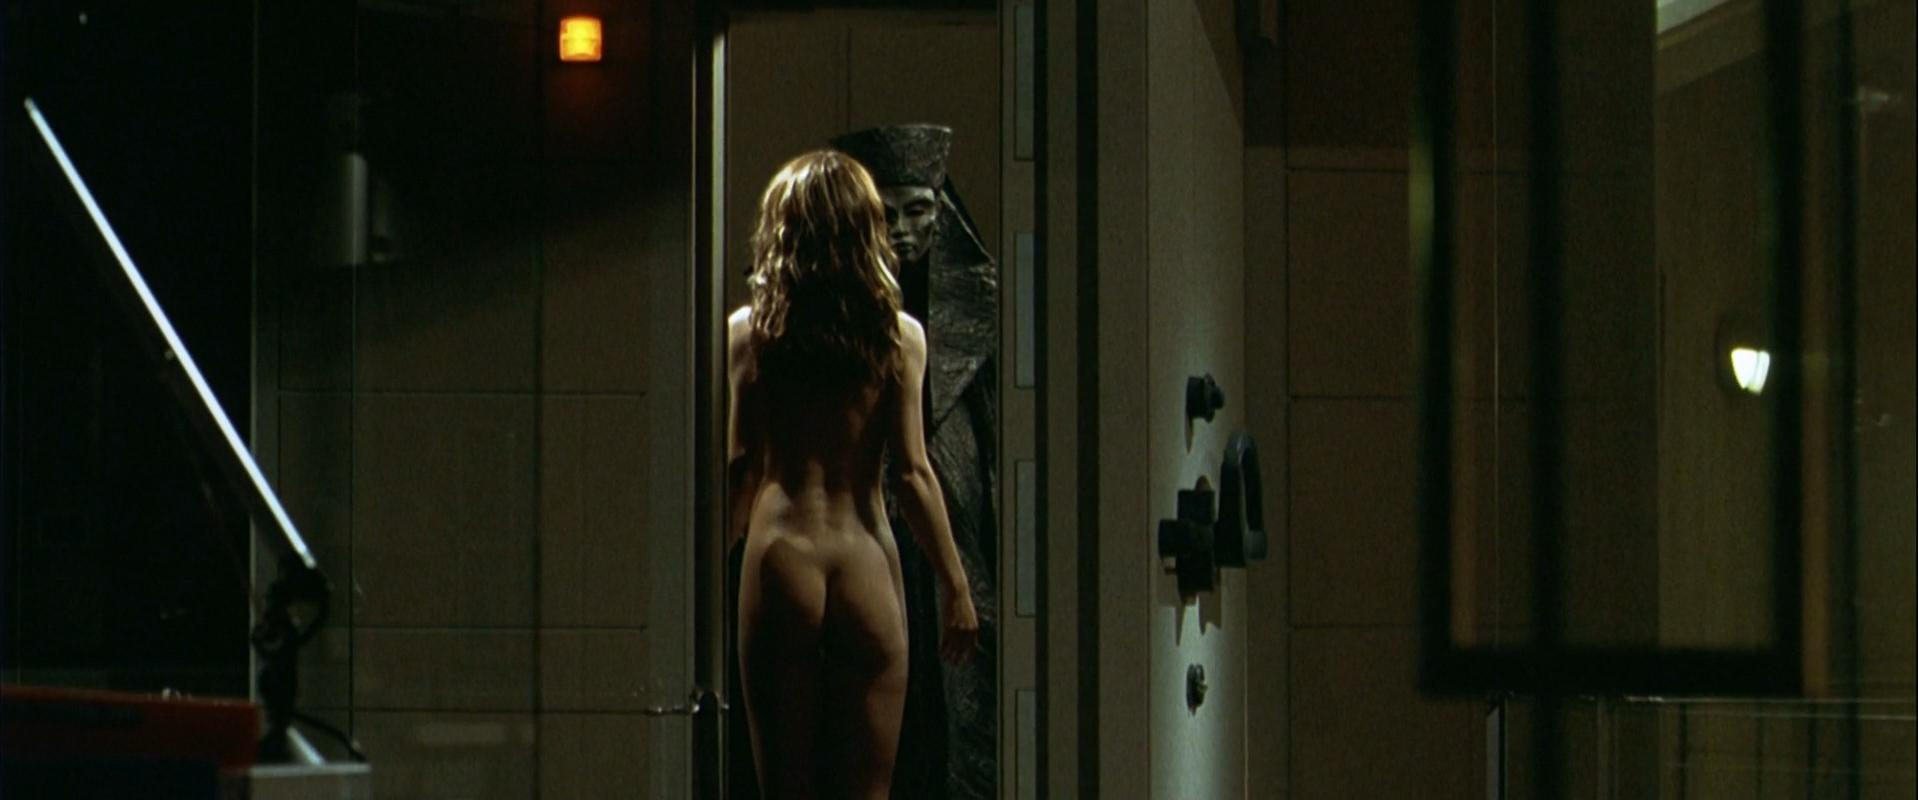 Sophie Marceau nude - Belphegor Phantom of the Louvre (2001)